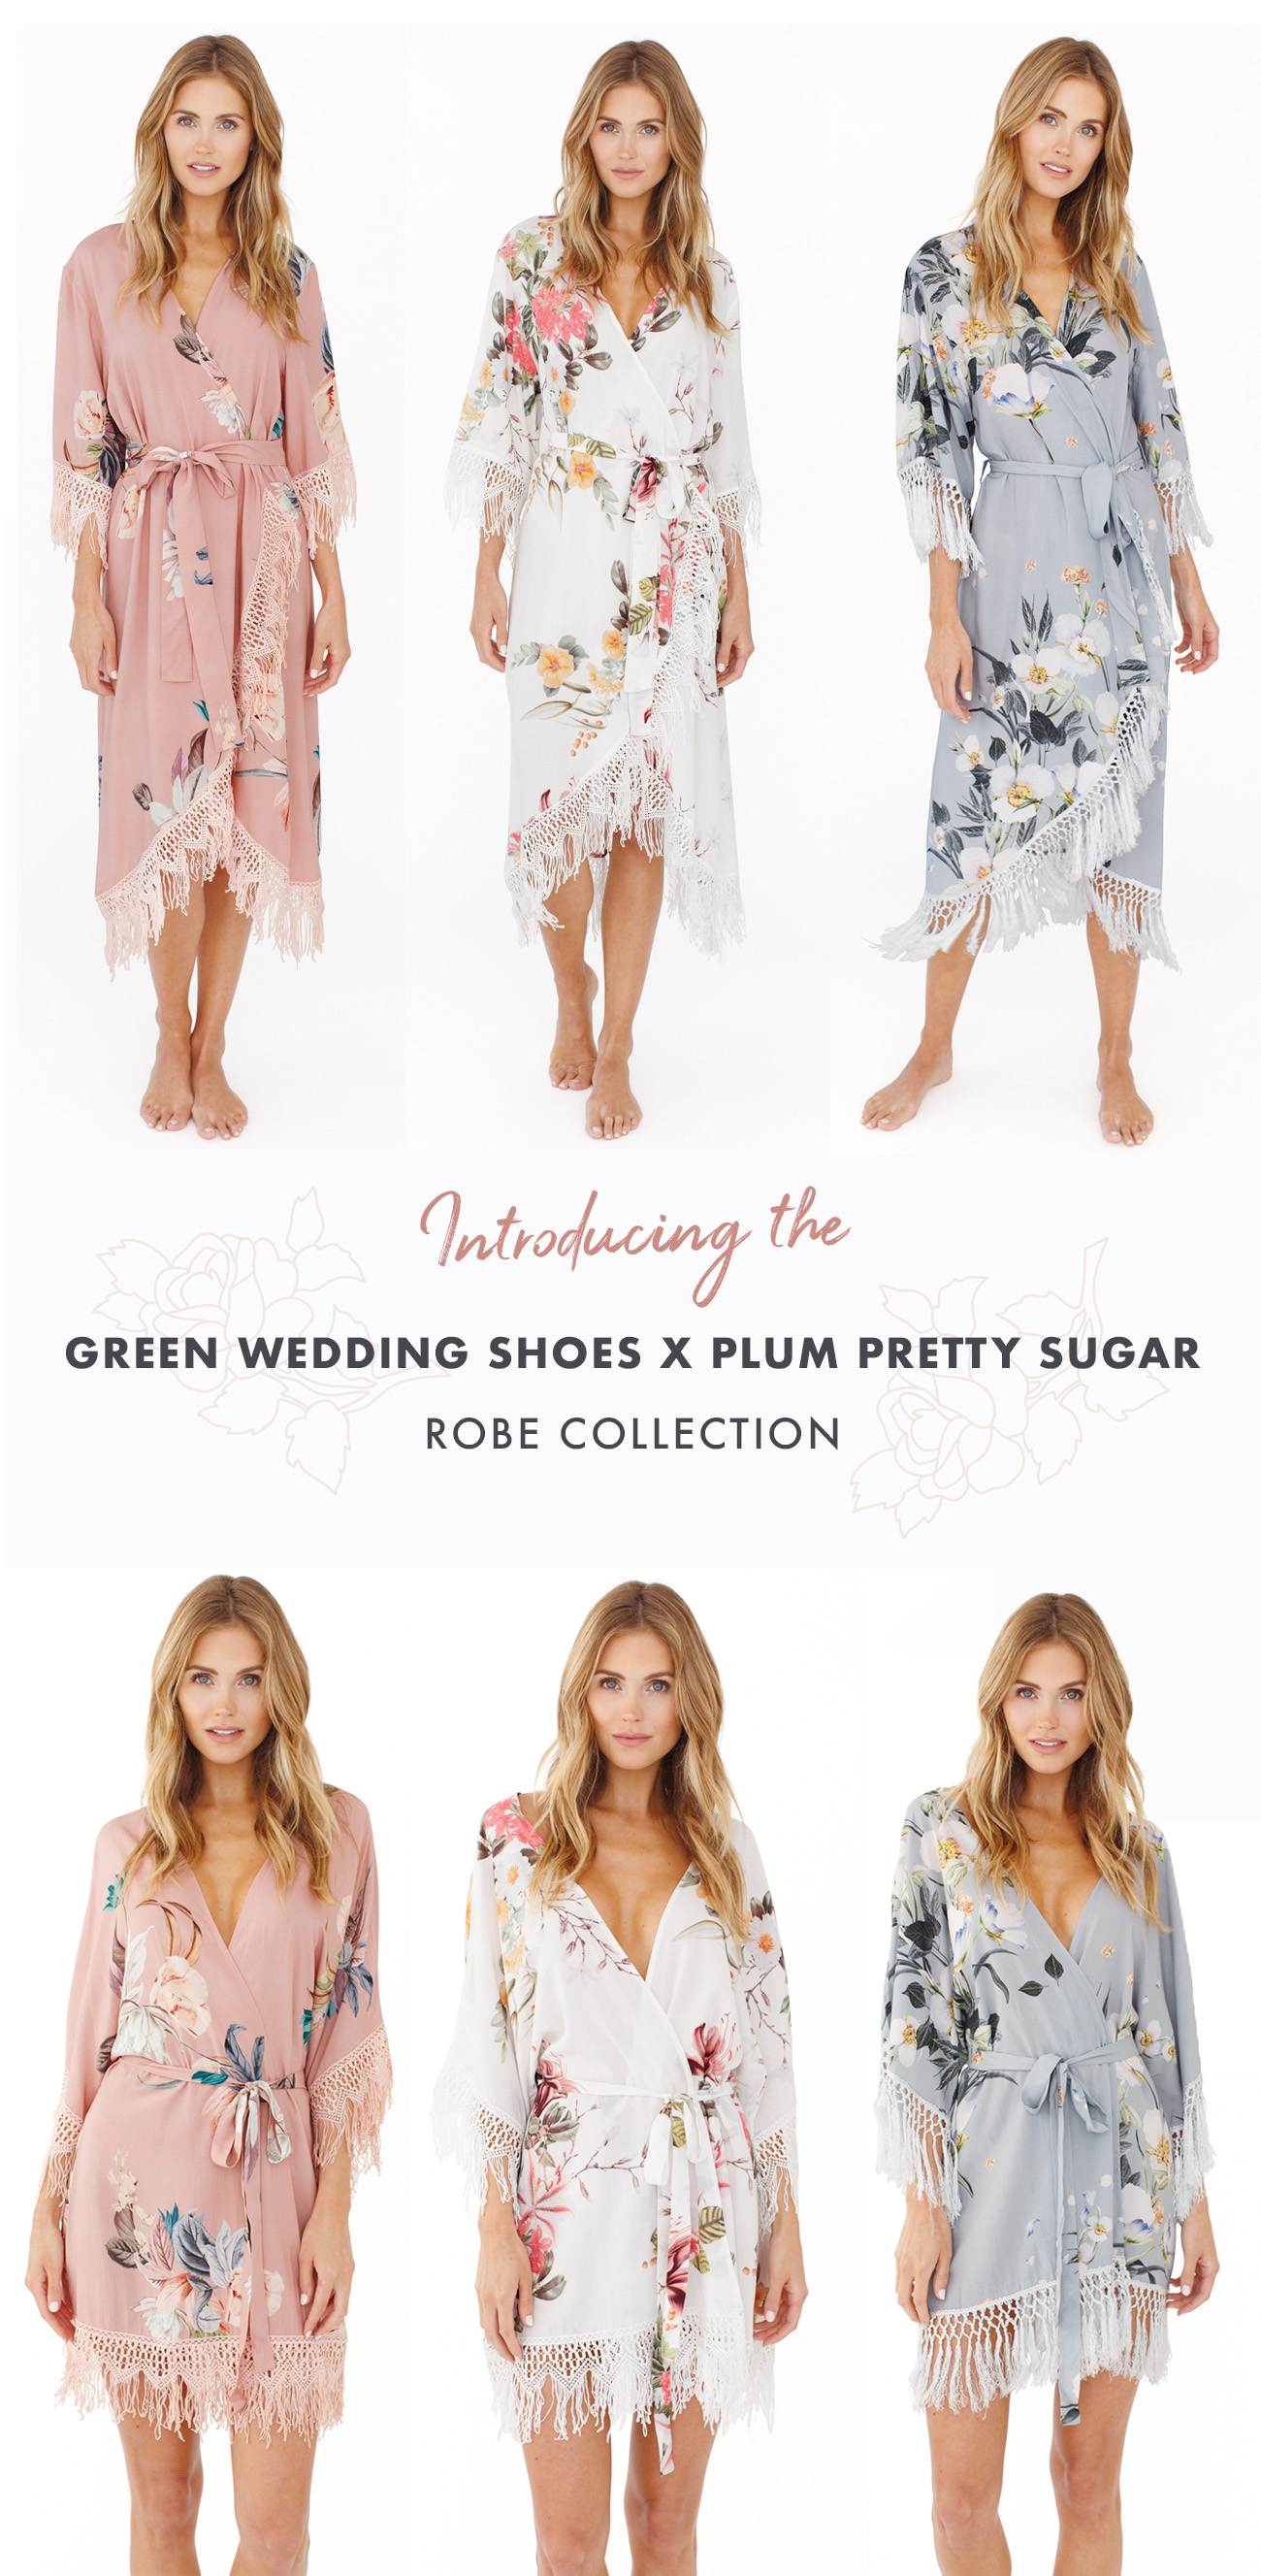 Green Wedding Shoes x Plum Pretty Sugar Robe Collection